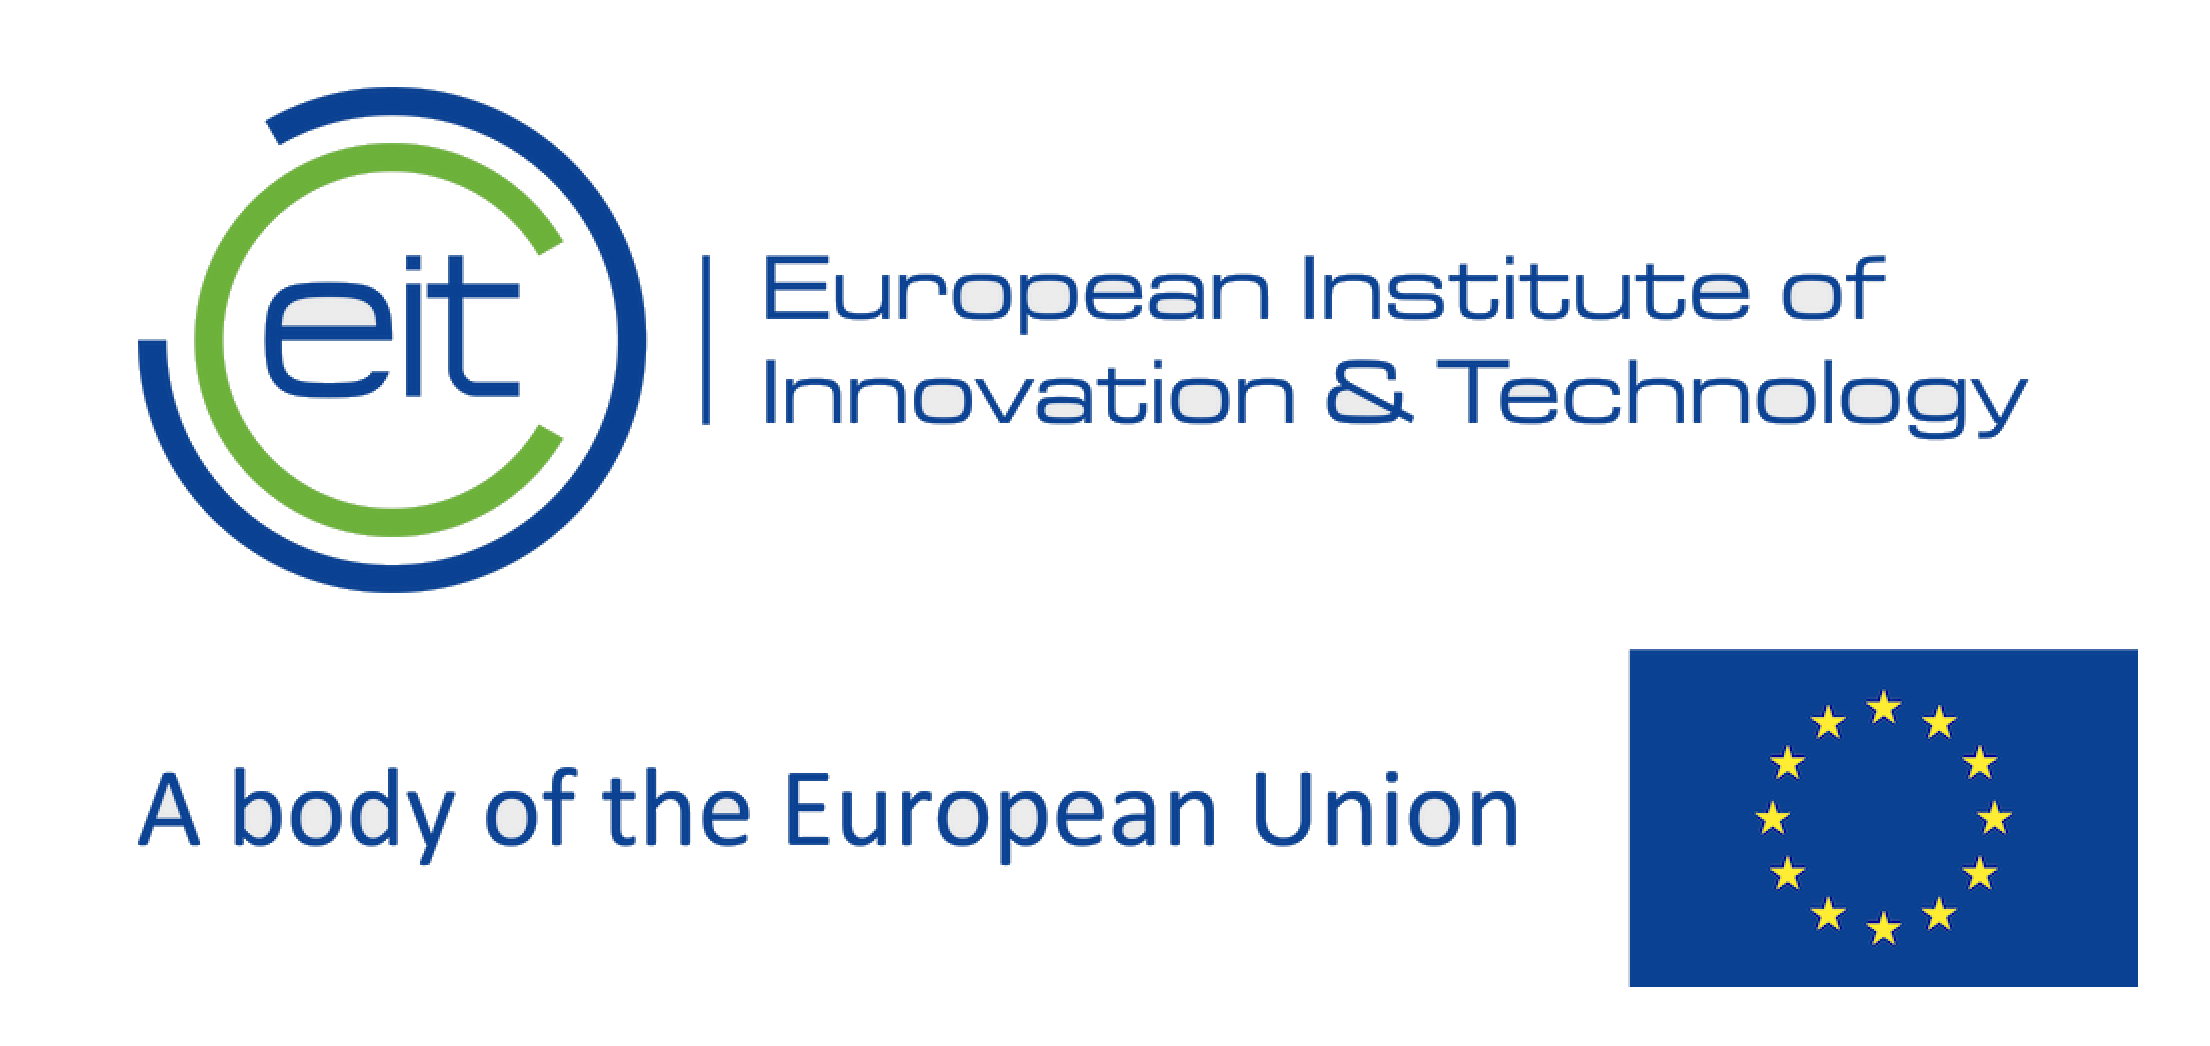 European Institute of Innovation and Technology (EIT)'s logo